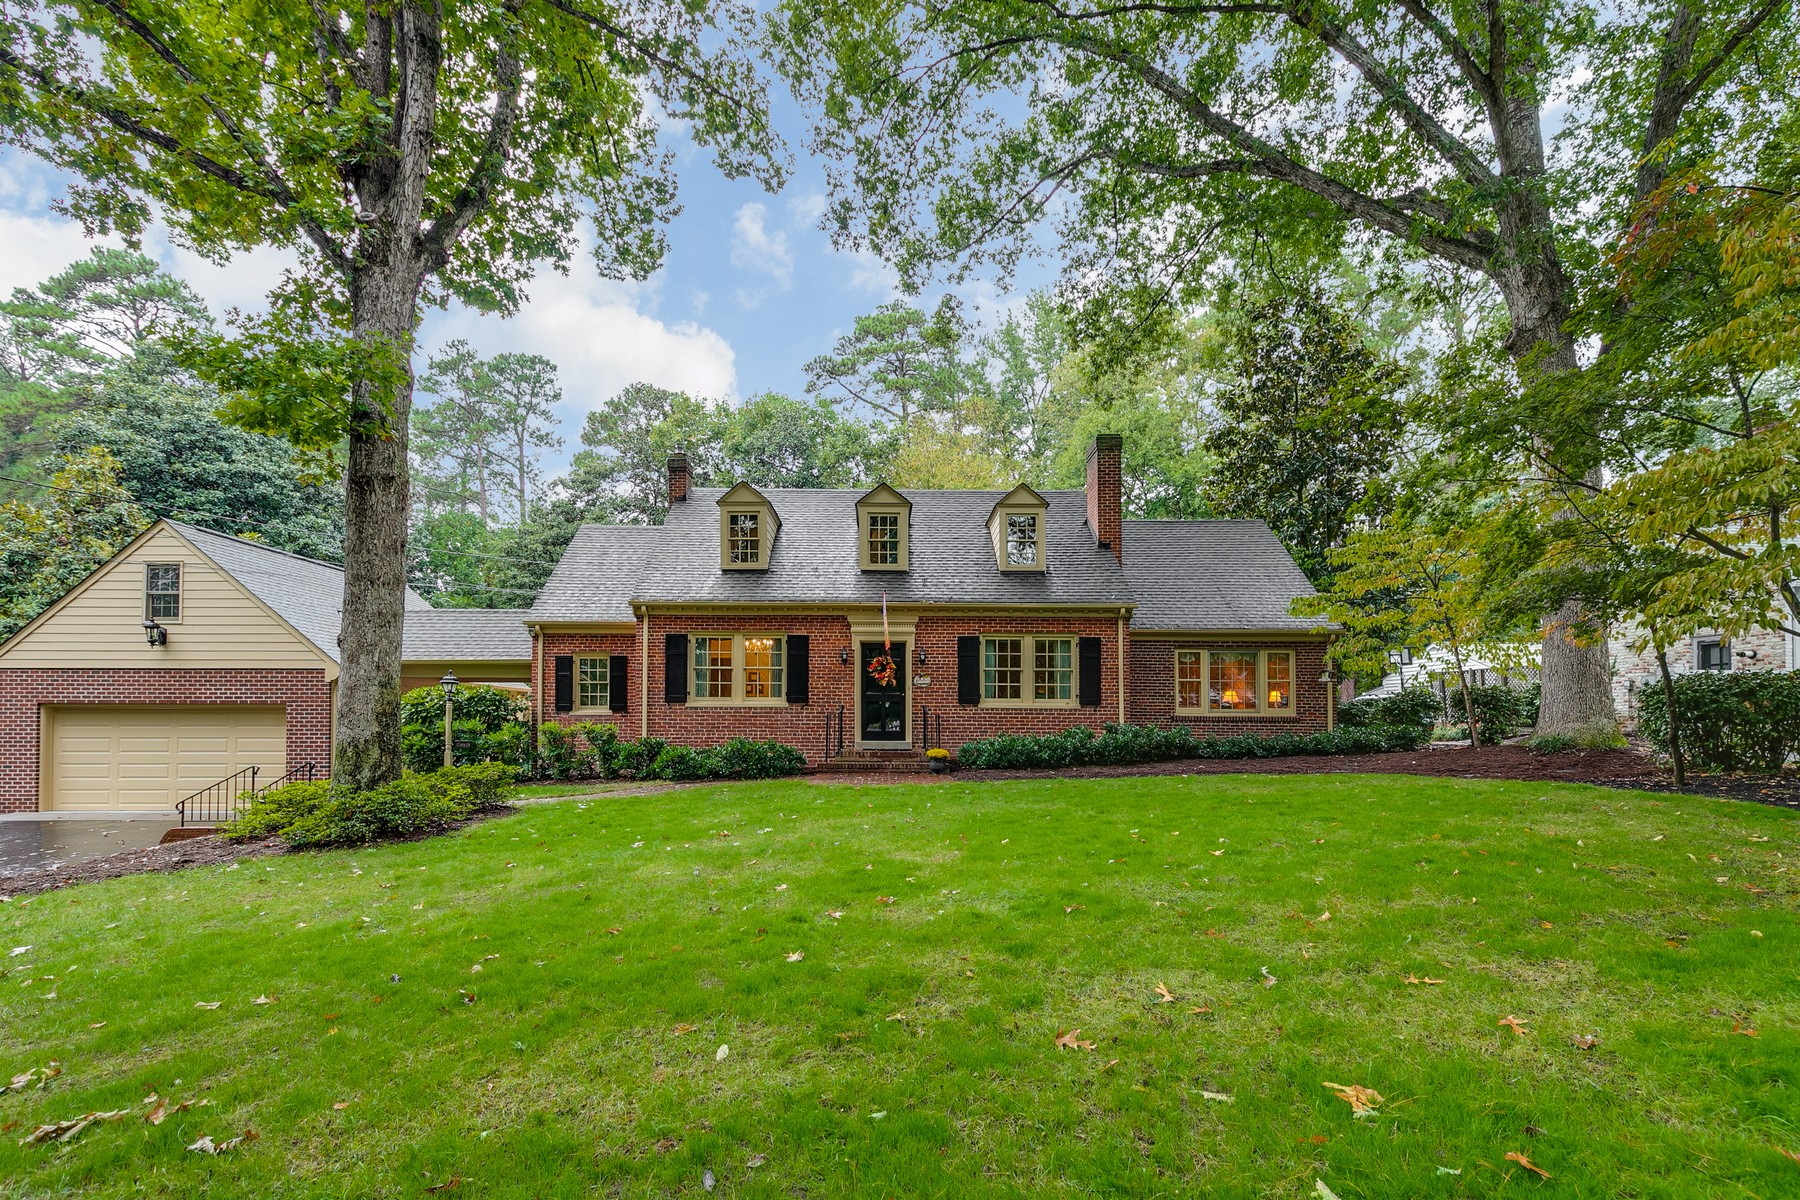 Single Family Homes for Sale at University Heights 912 Forest Avenue, Henrico, Virginia 23229 United States